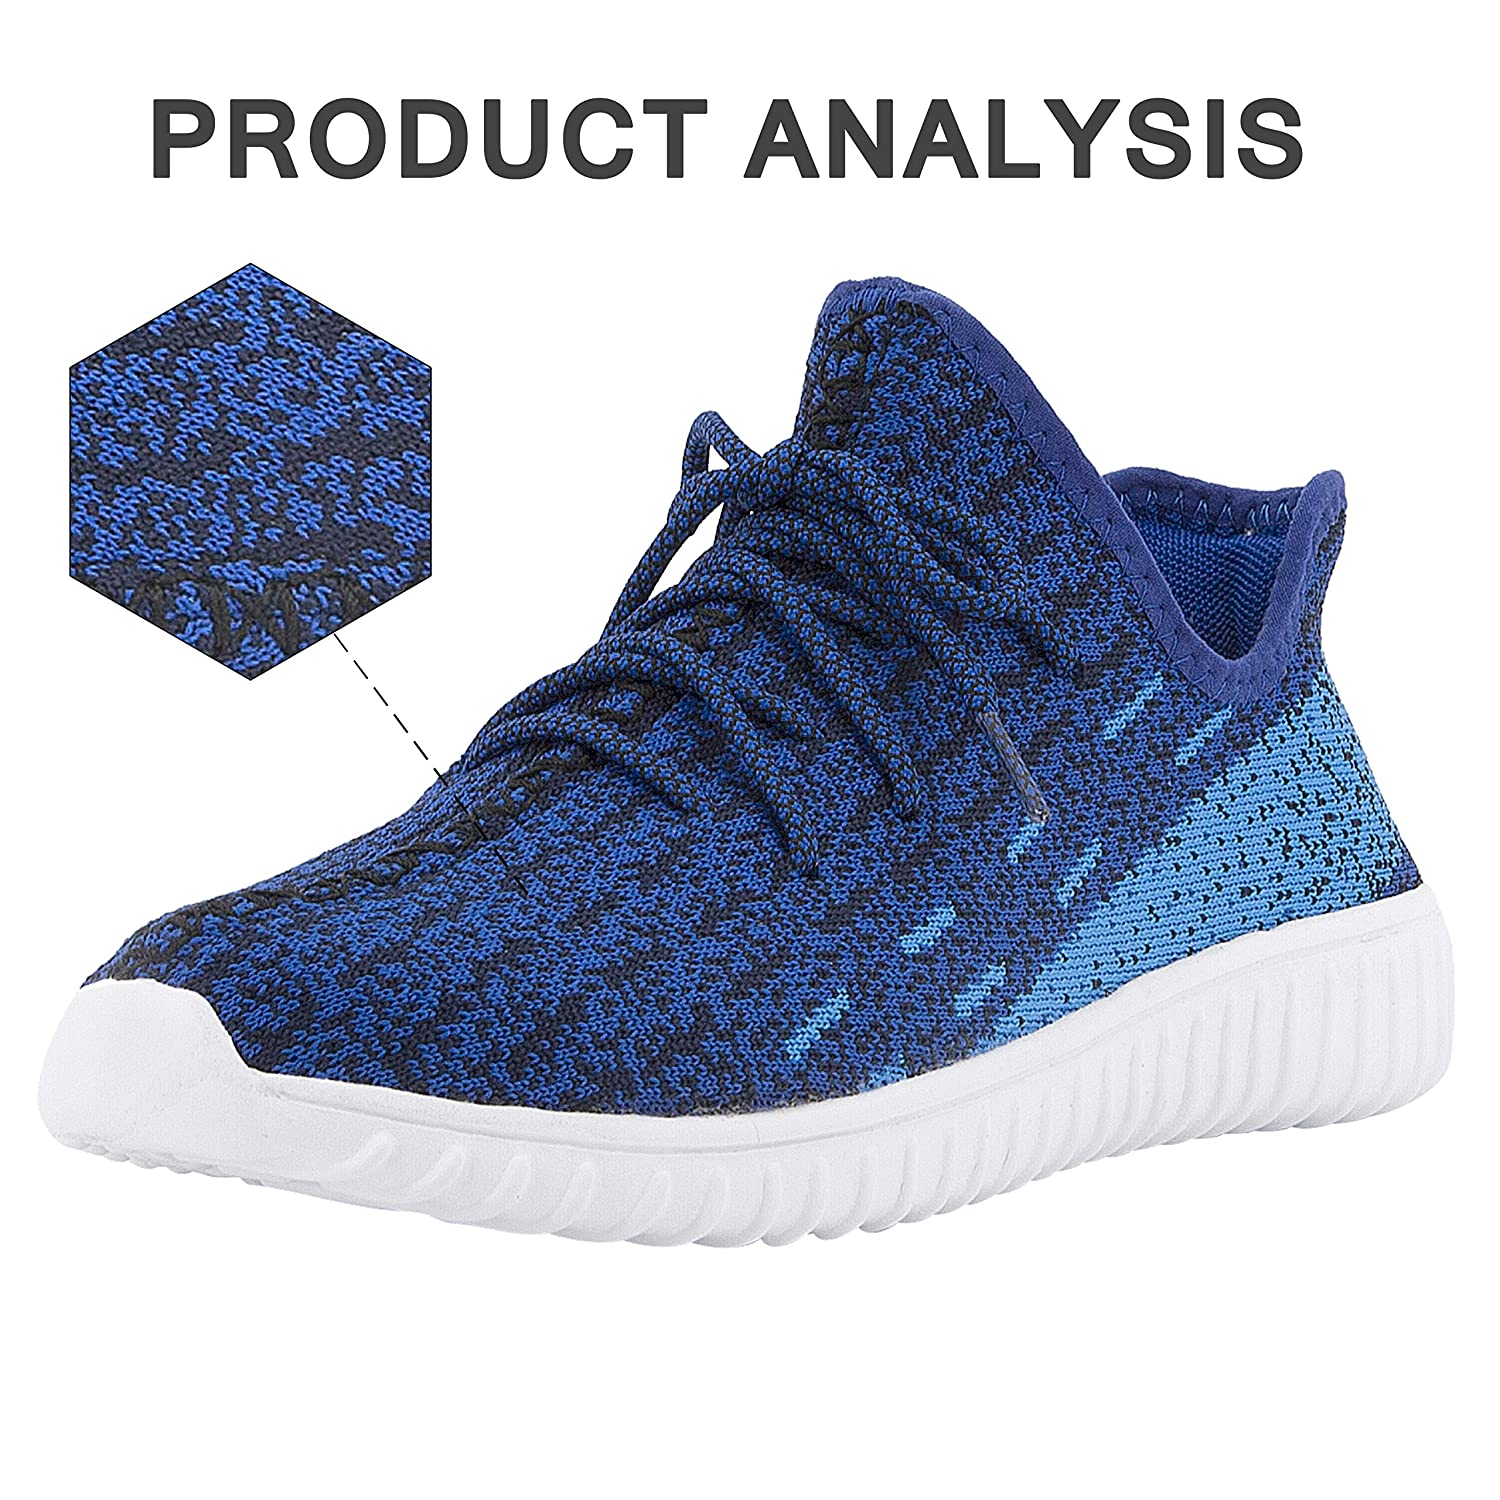 03cba054fa63 Running Shoes Lightweight Fashion Mesh Sneakers-Men's Women's Jill Athletic  Shoes Breathable Casual Trainers